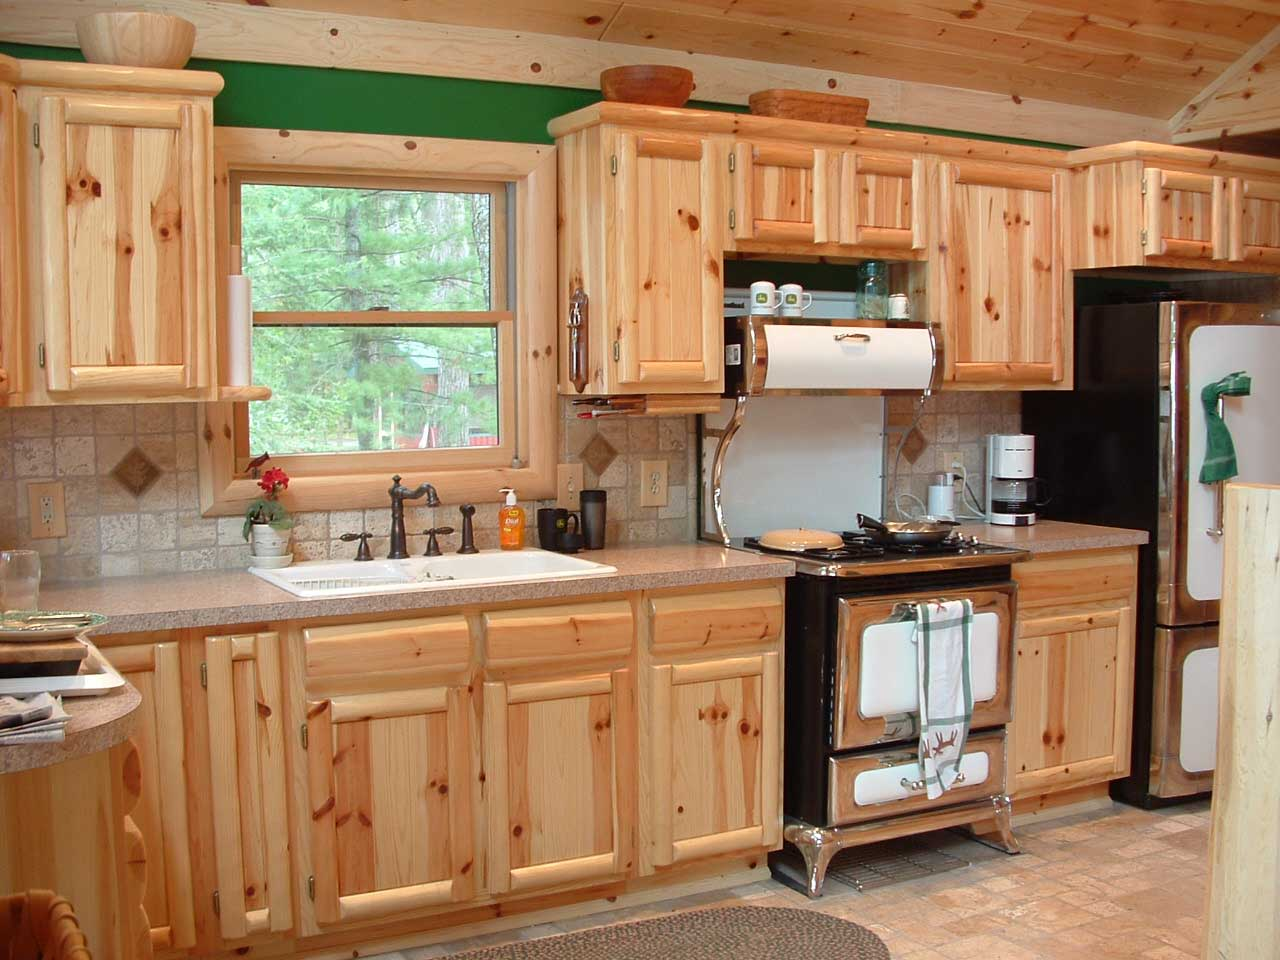 & Cabinetry - Kitchens and Baths | Timber Country Cabinetry